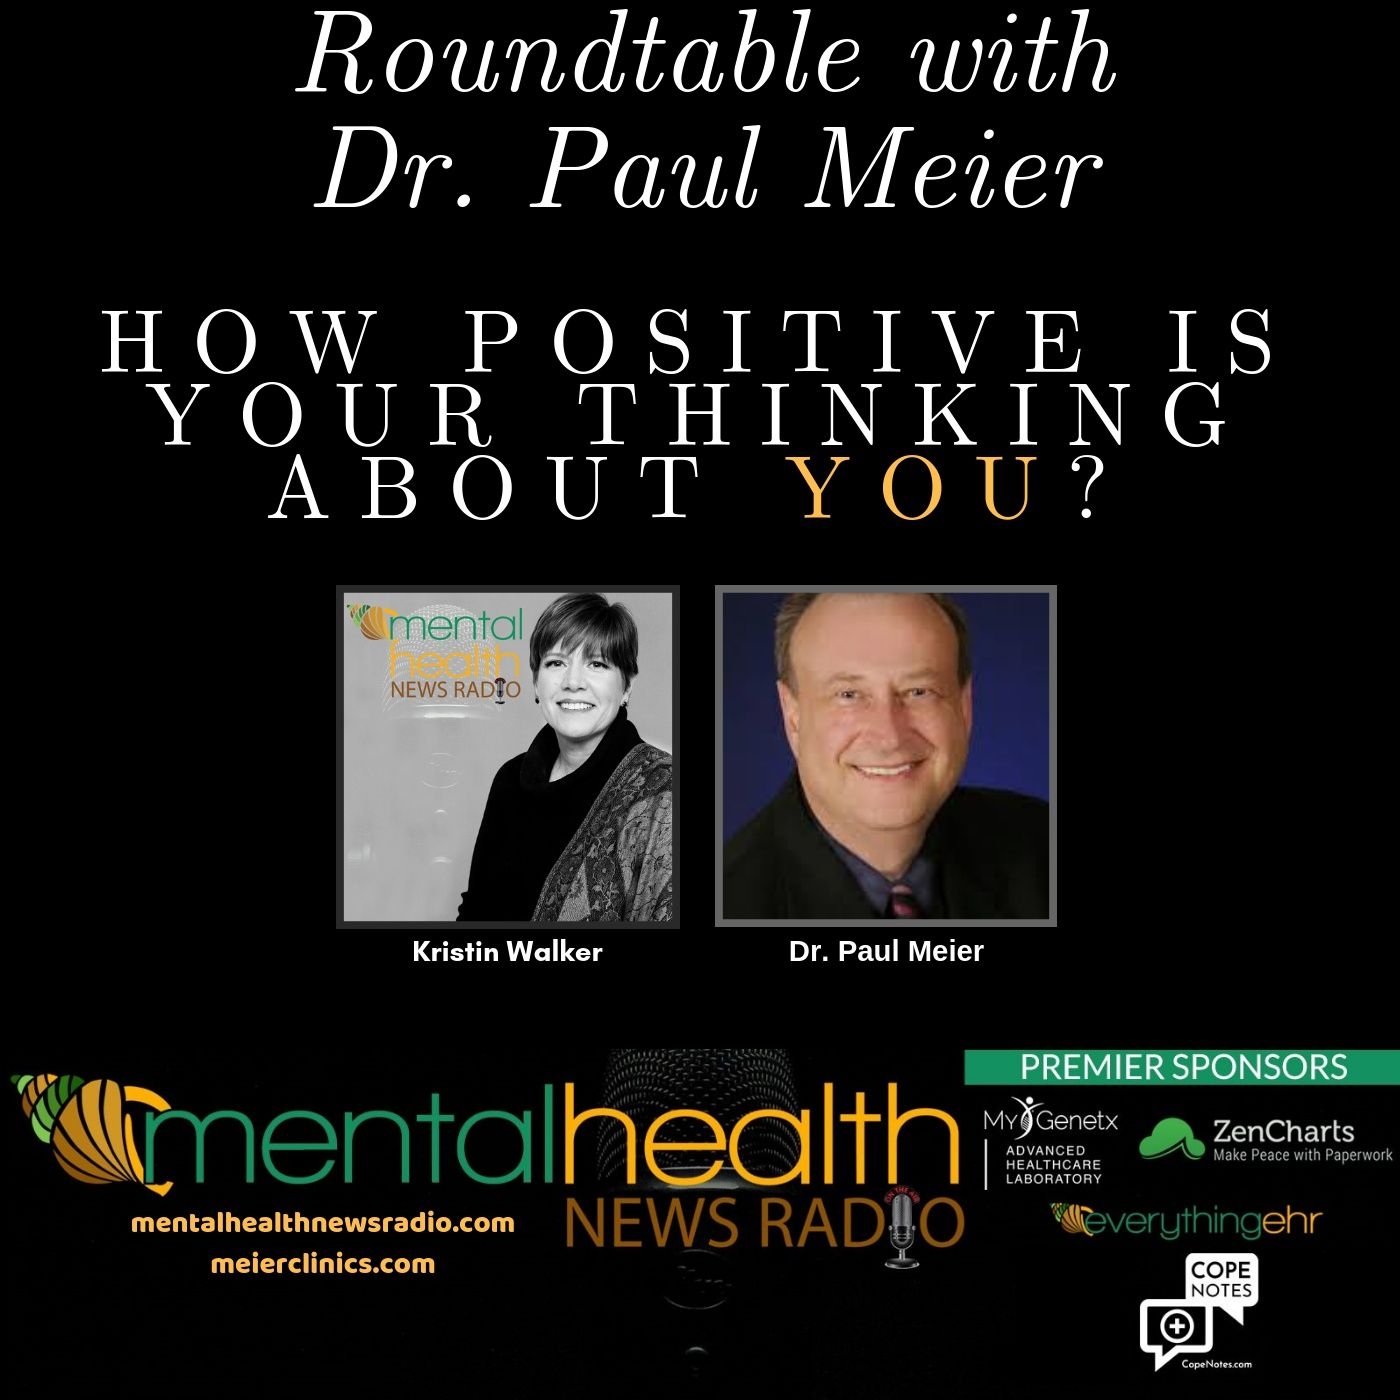 Mental Health News Radio - Roundtable with Dr. Paul Meier: How Positive Is Your Thinking About YOU?